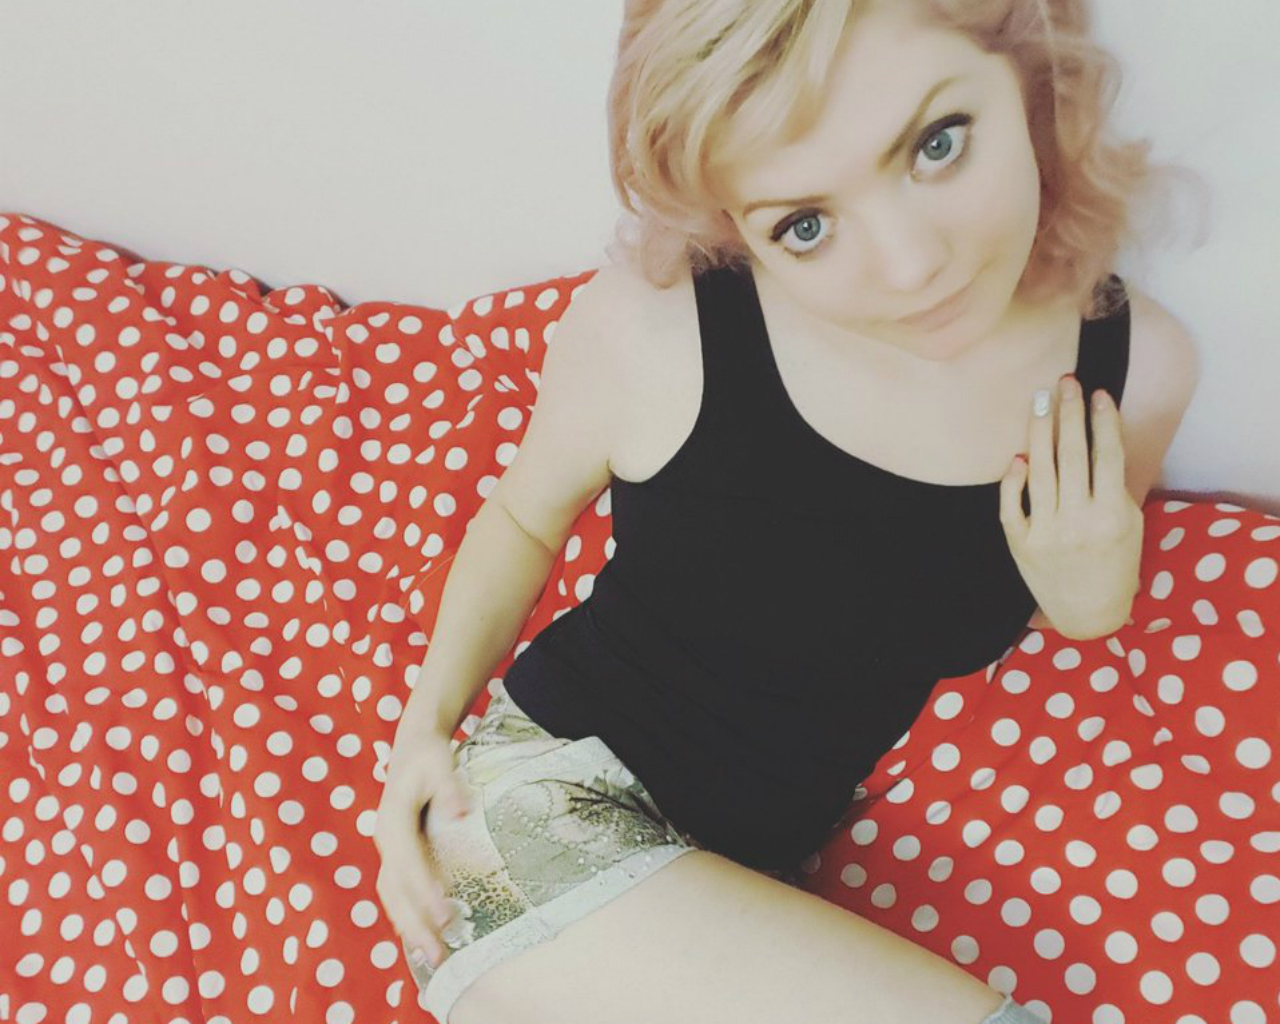 Try Something New: 3 Different Cam Shows